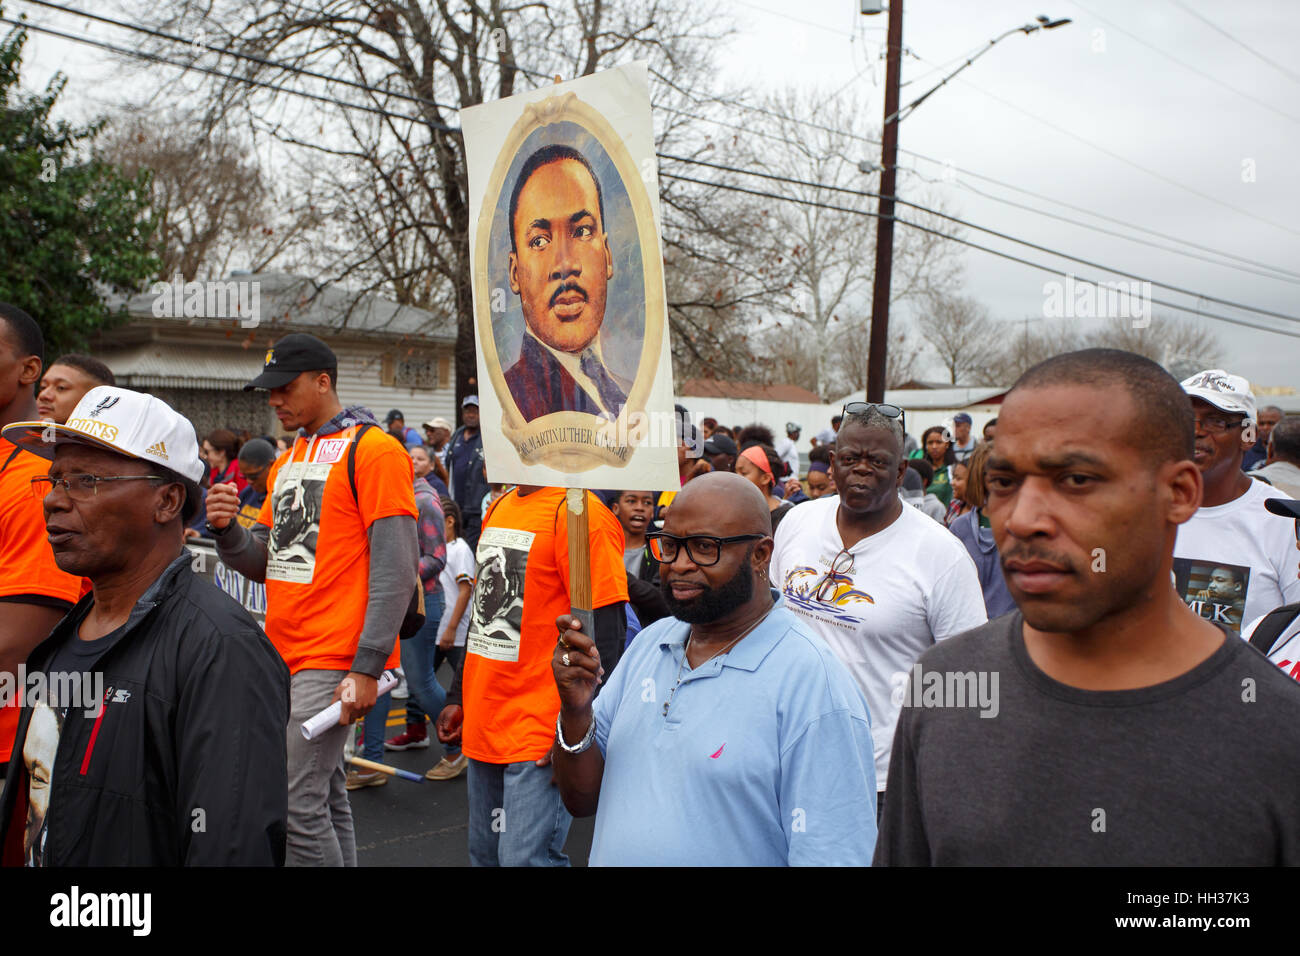 San Antonio Usa 16th January 2017 A Marcher Holding An Image Of